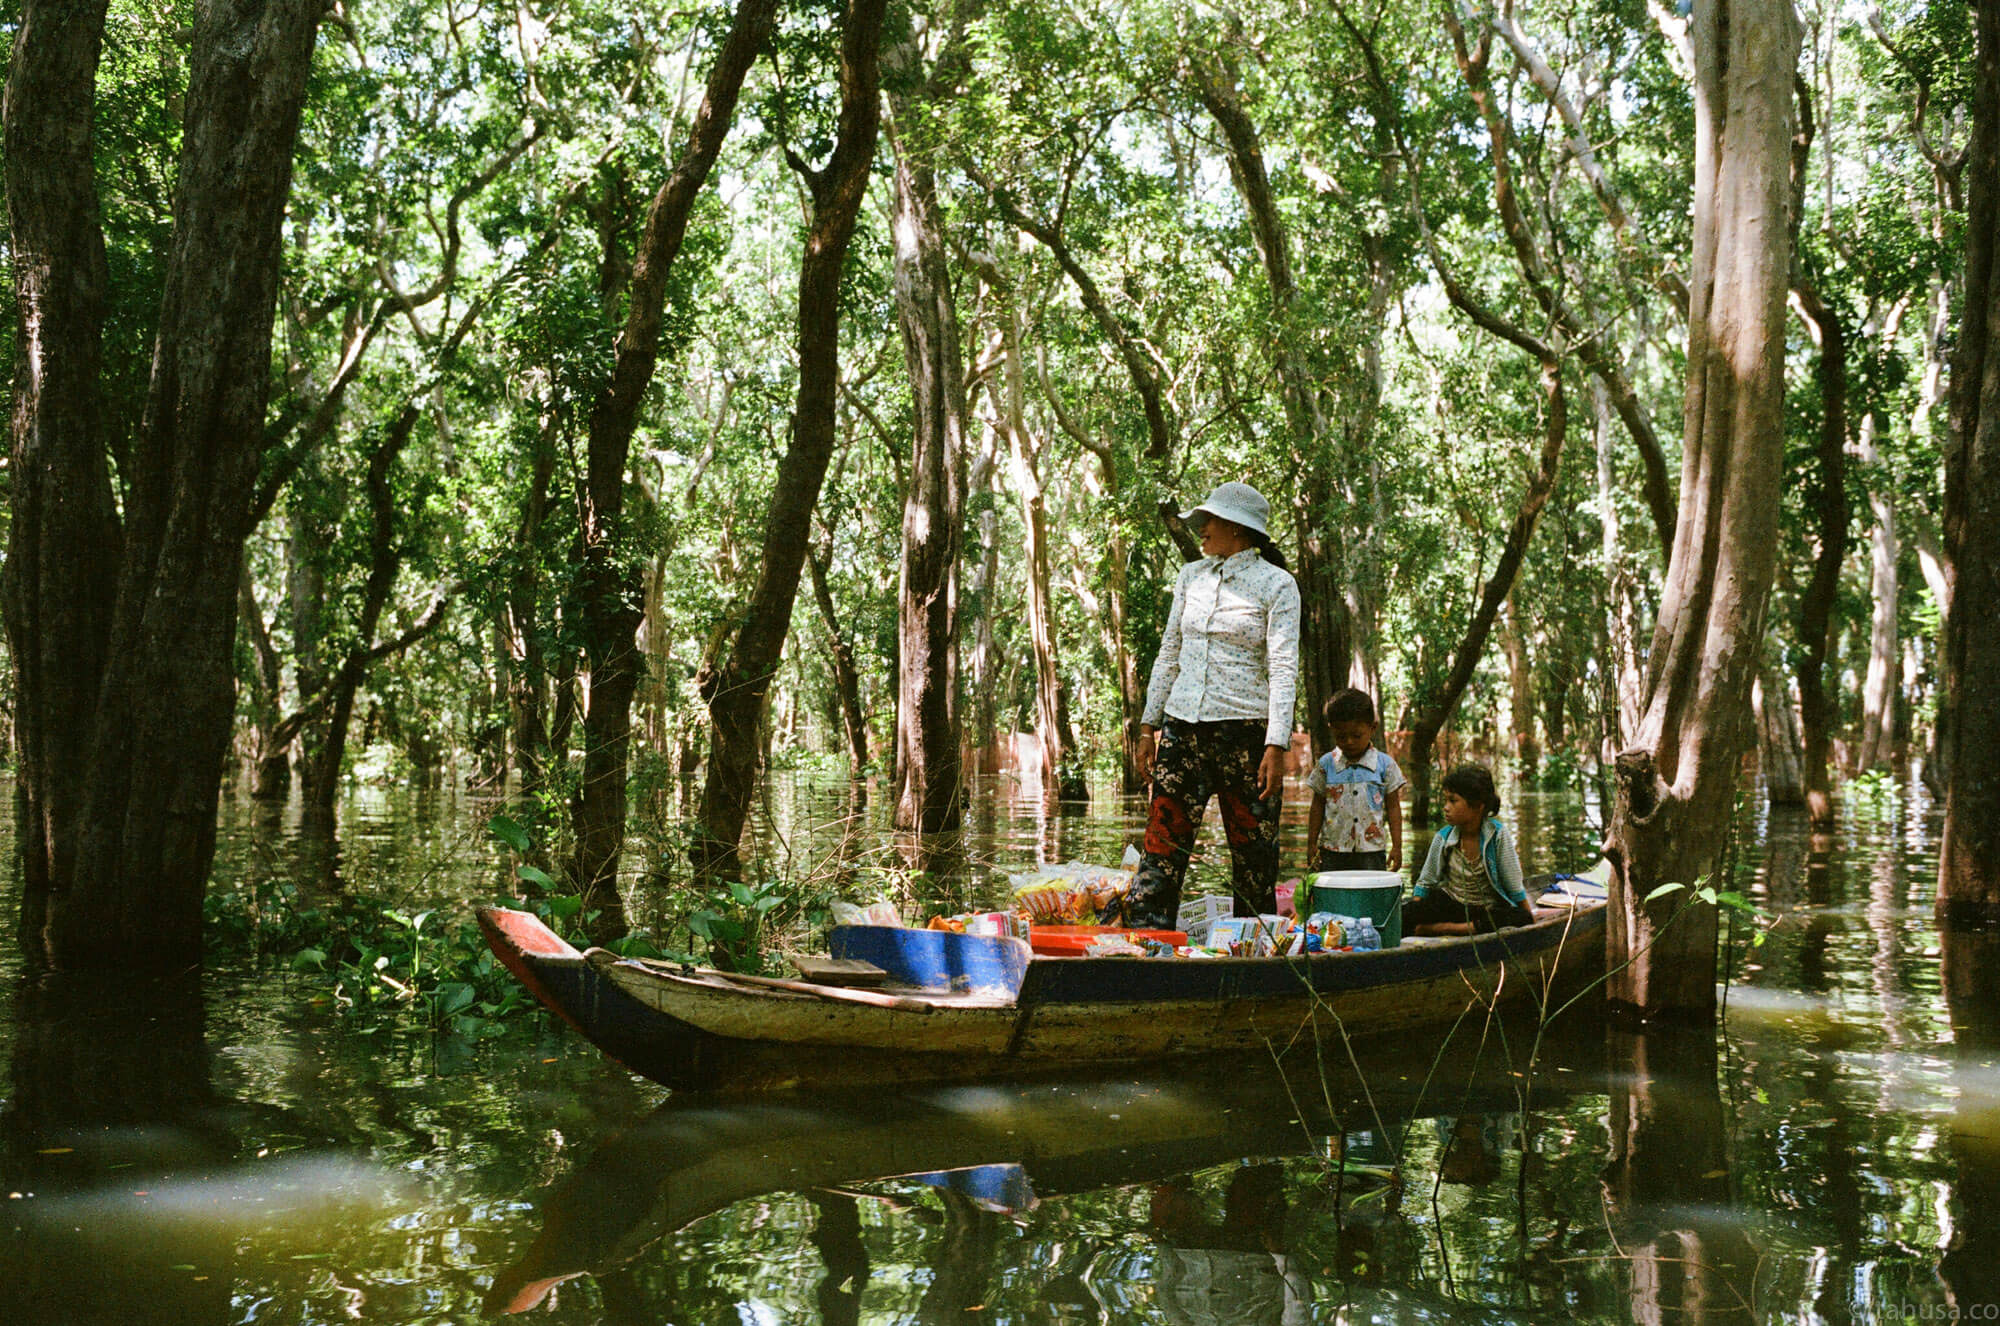 selling-snacks-on-boat-family-in-mangrove-forest-floating-village-cambodia-angkor-siem-reap-south-east-asia-travel-travelling-street-snap-using-leica-m2-summicron-35mm-f2-v1-8elements-analog-film-is-fuji-fujifilm-superia-premium-400-iso400